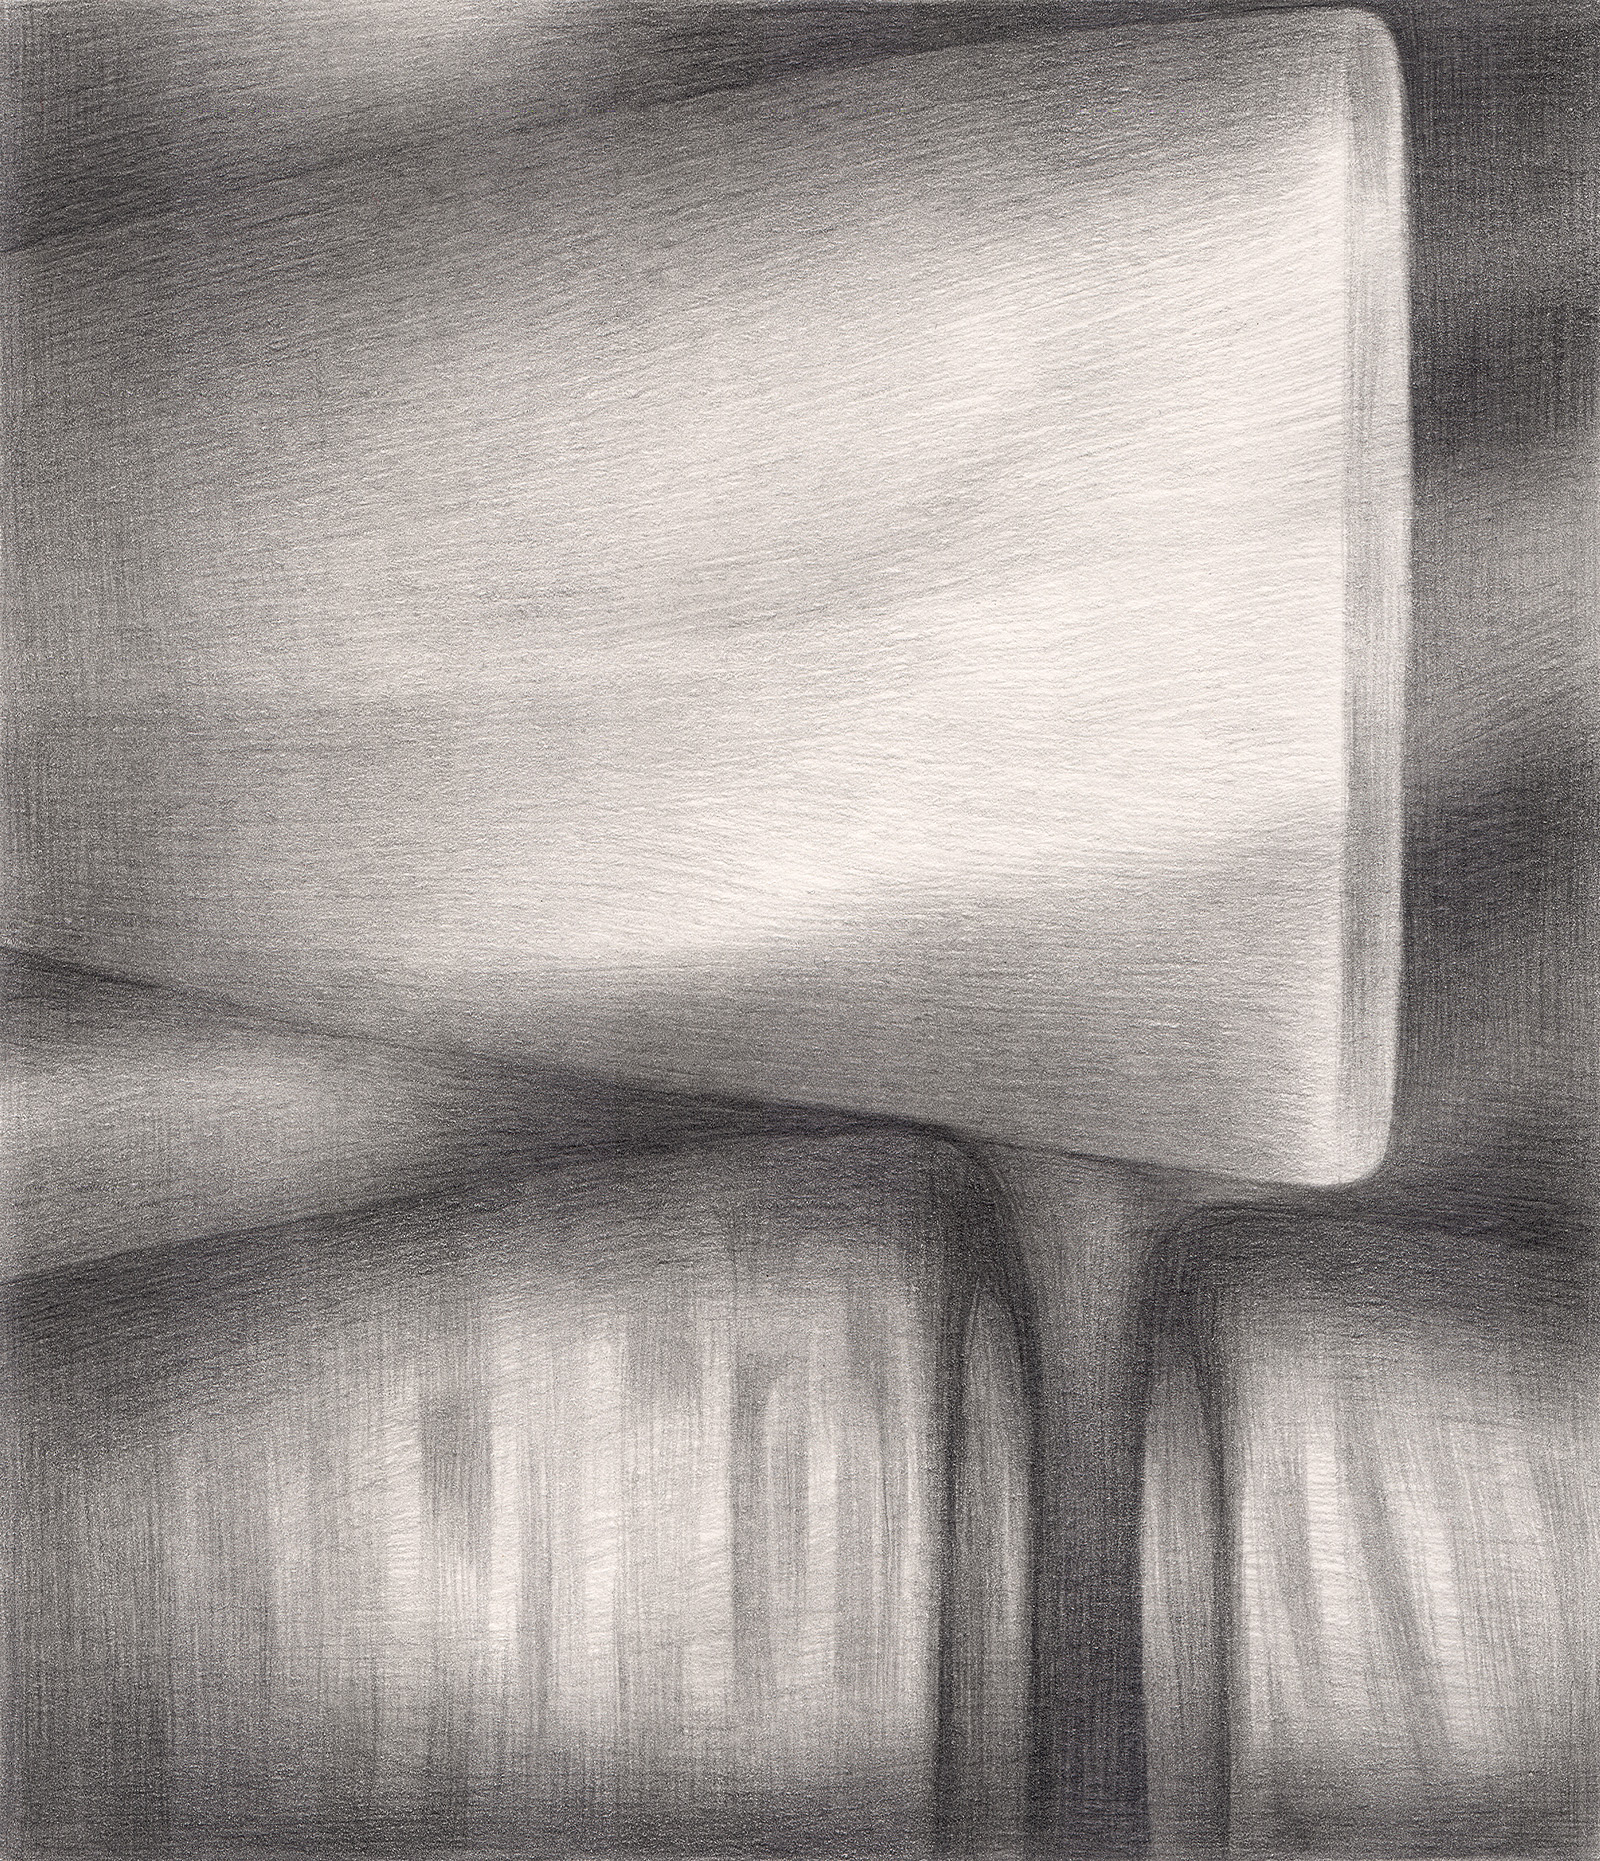 "The Attention of Strangers , 2005. Graphite on paper. 6"" x 7""."